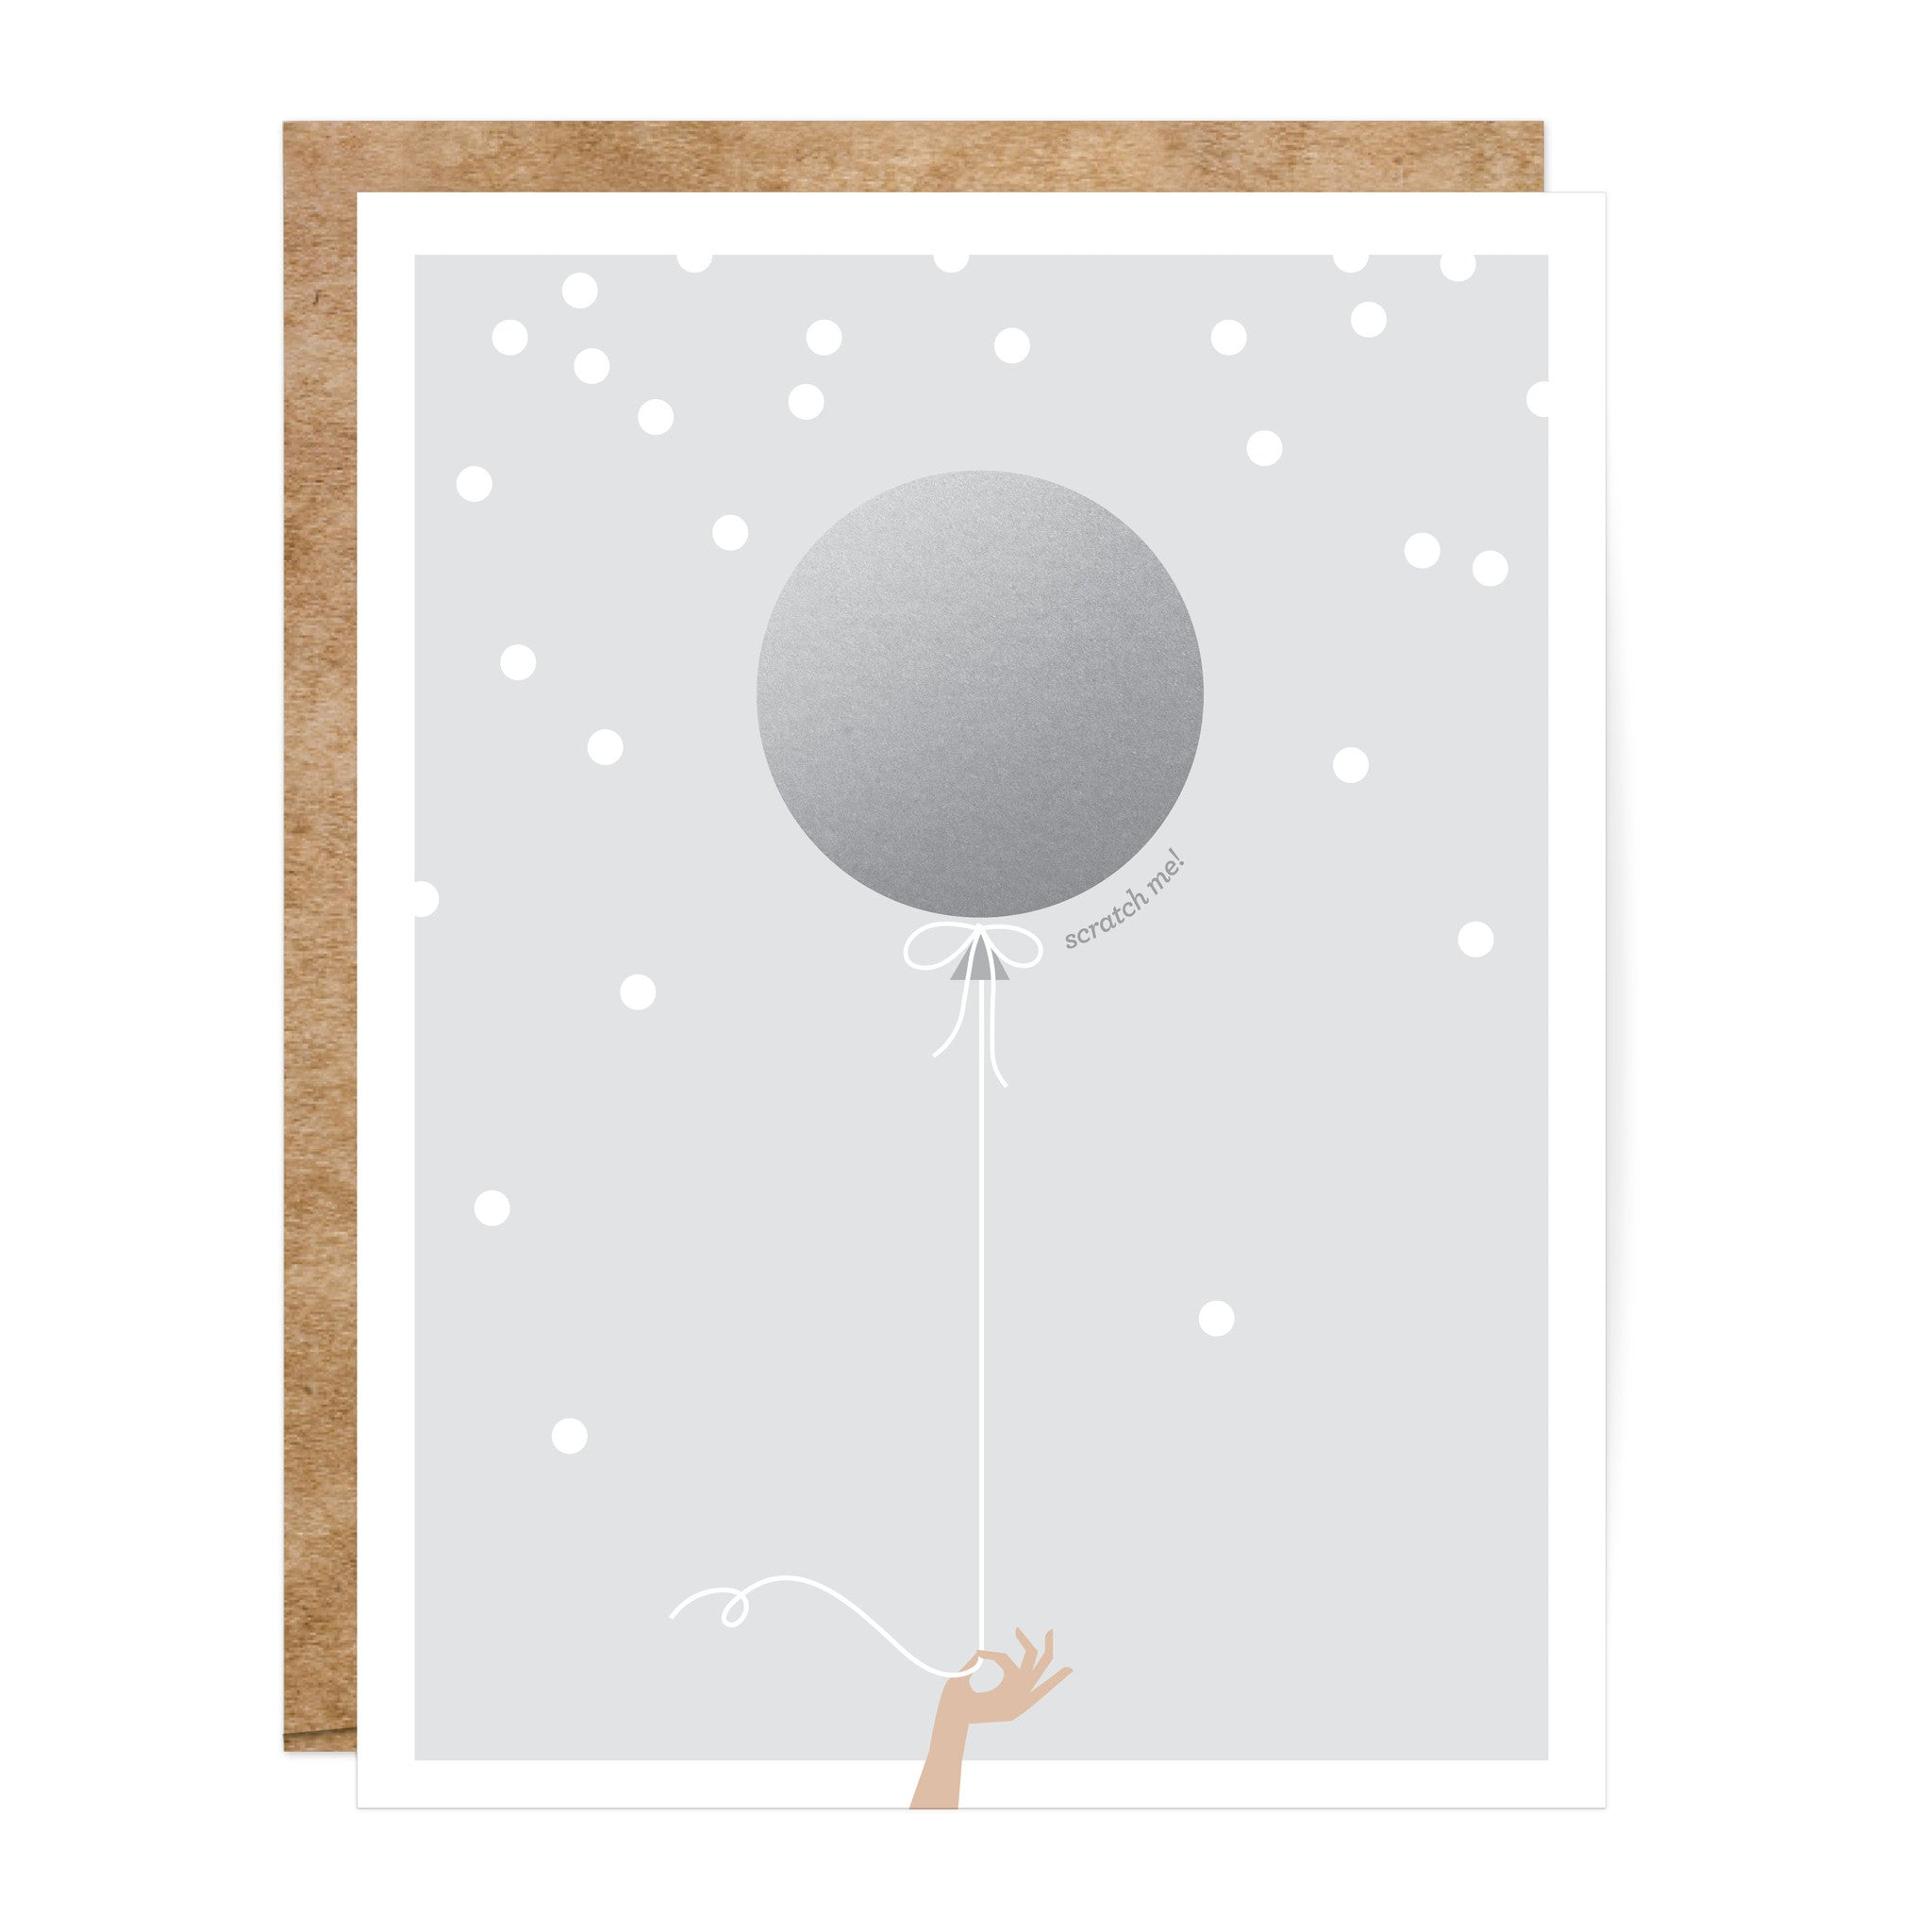 Soft Grey and Silver Scratch-Off Balloon Greeting Card